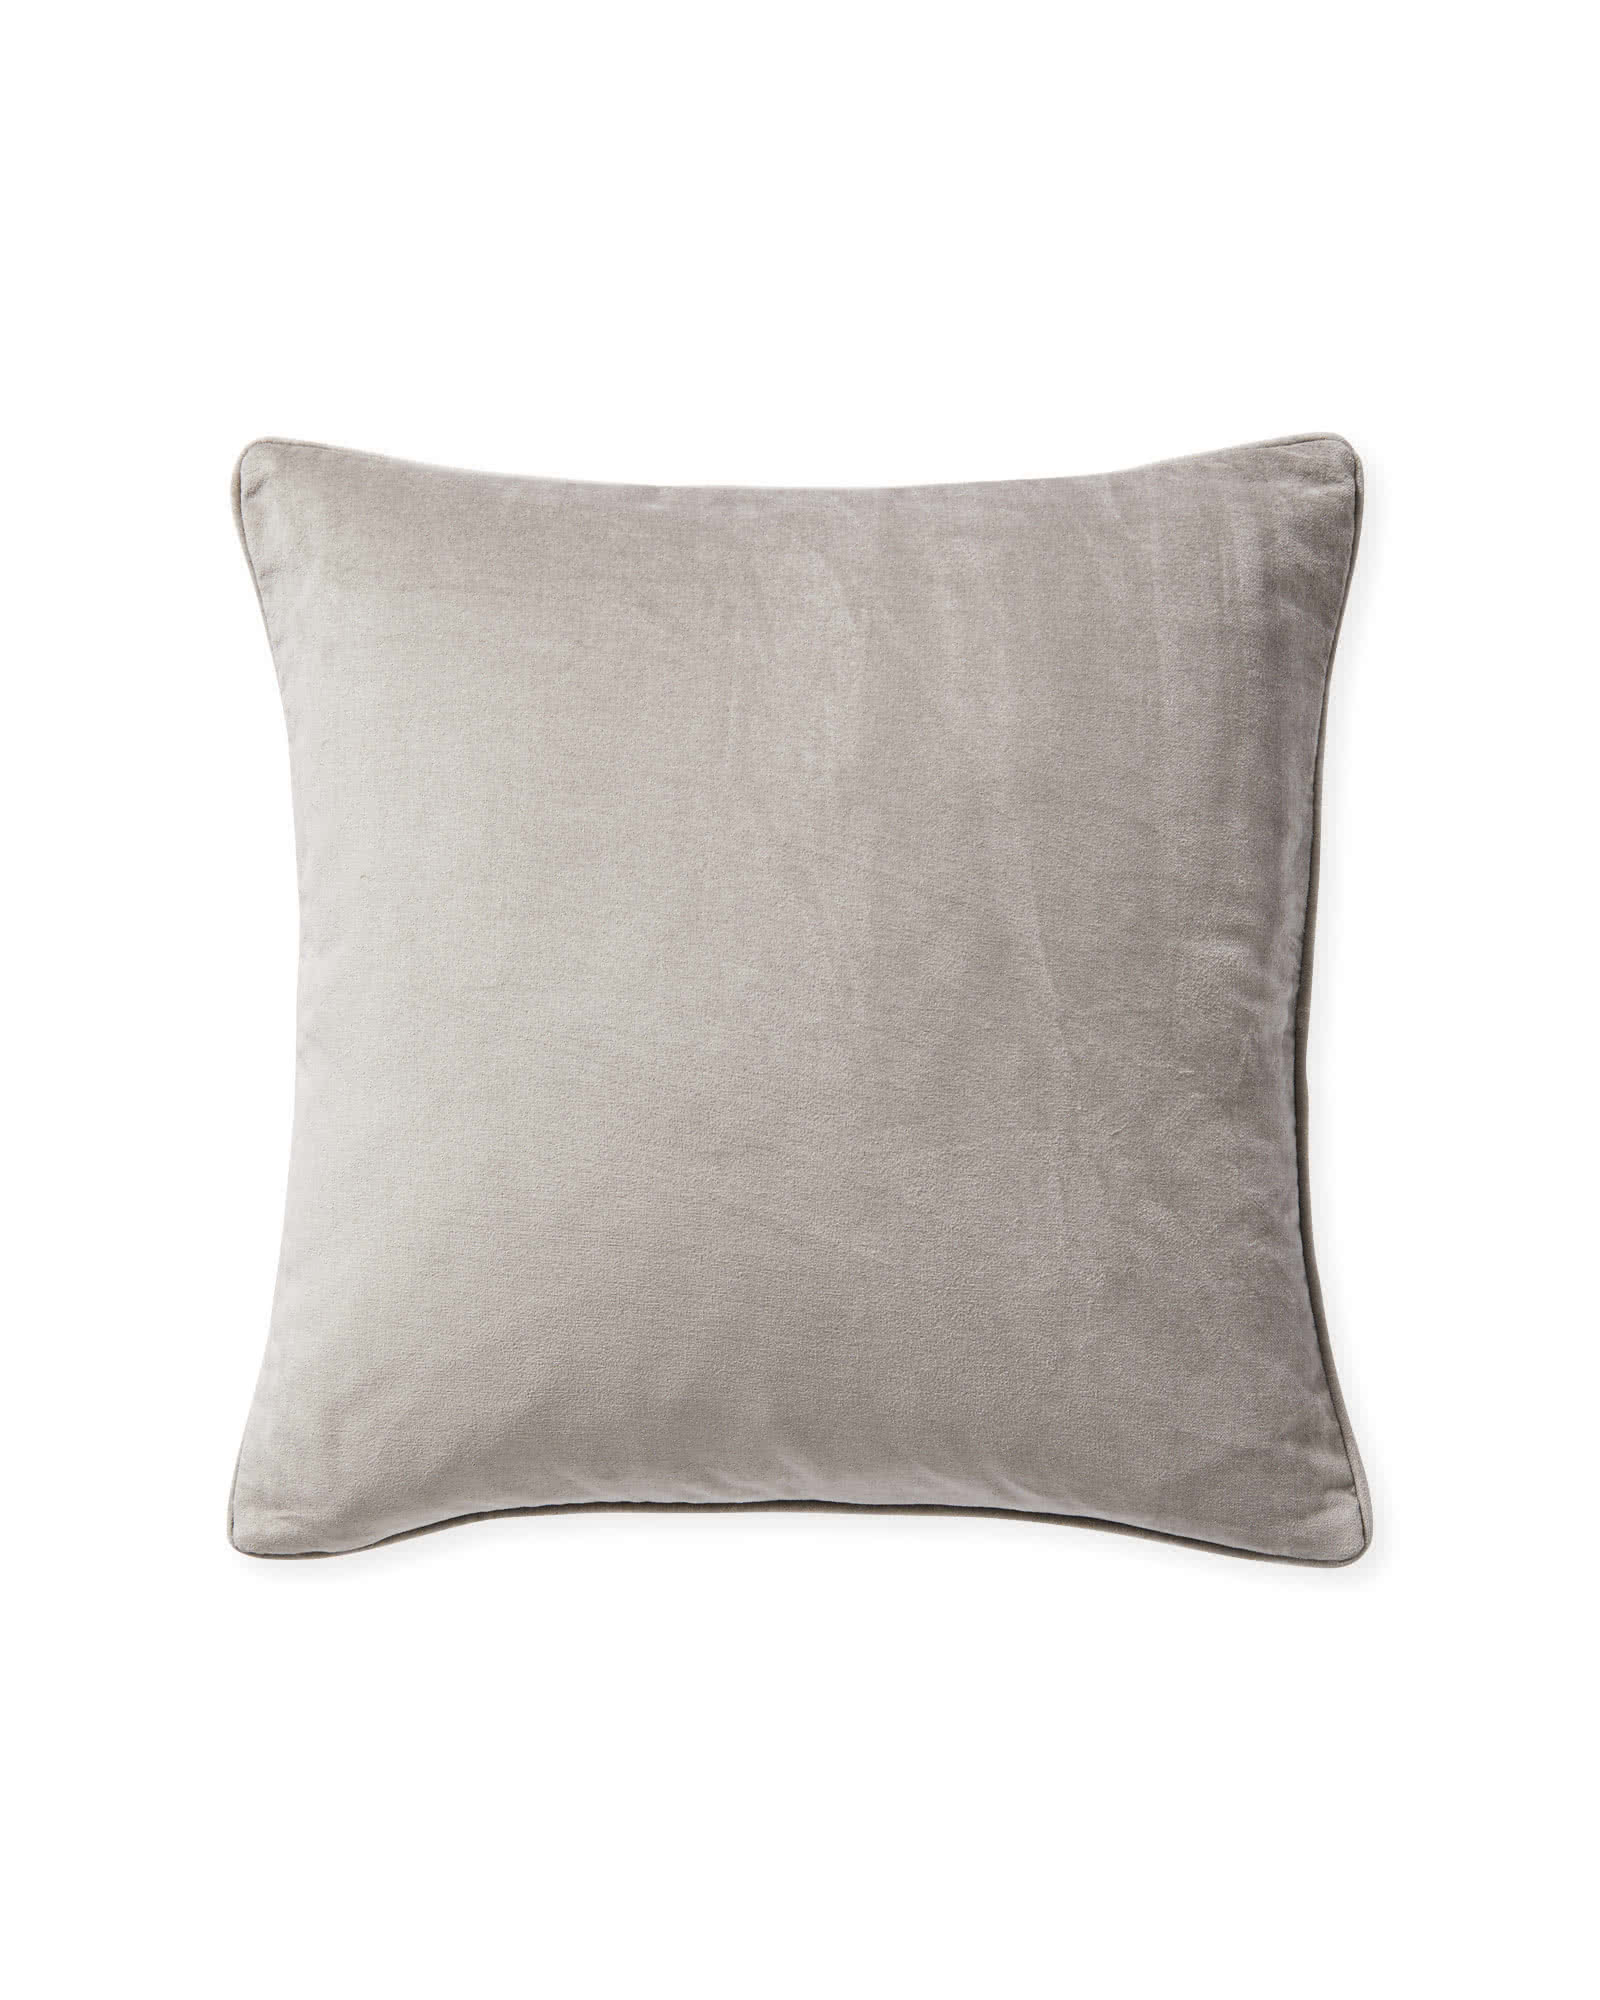 Bedwell Pillow Cover, Smoke